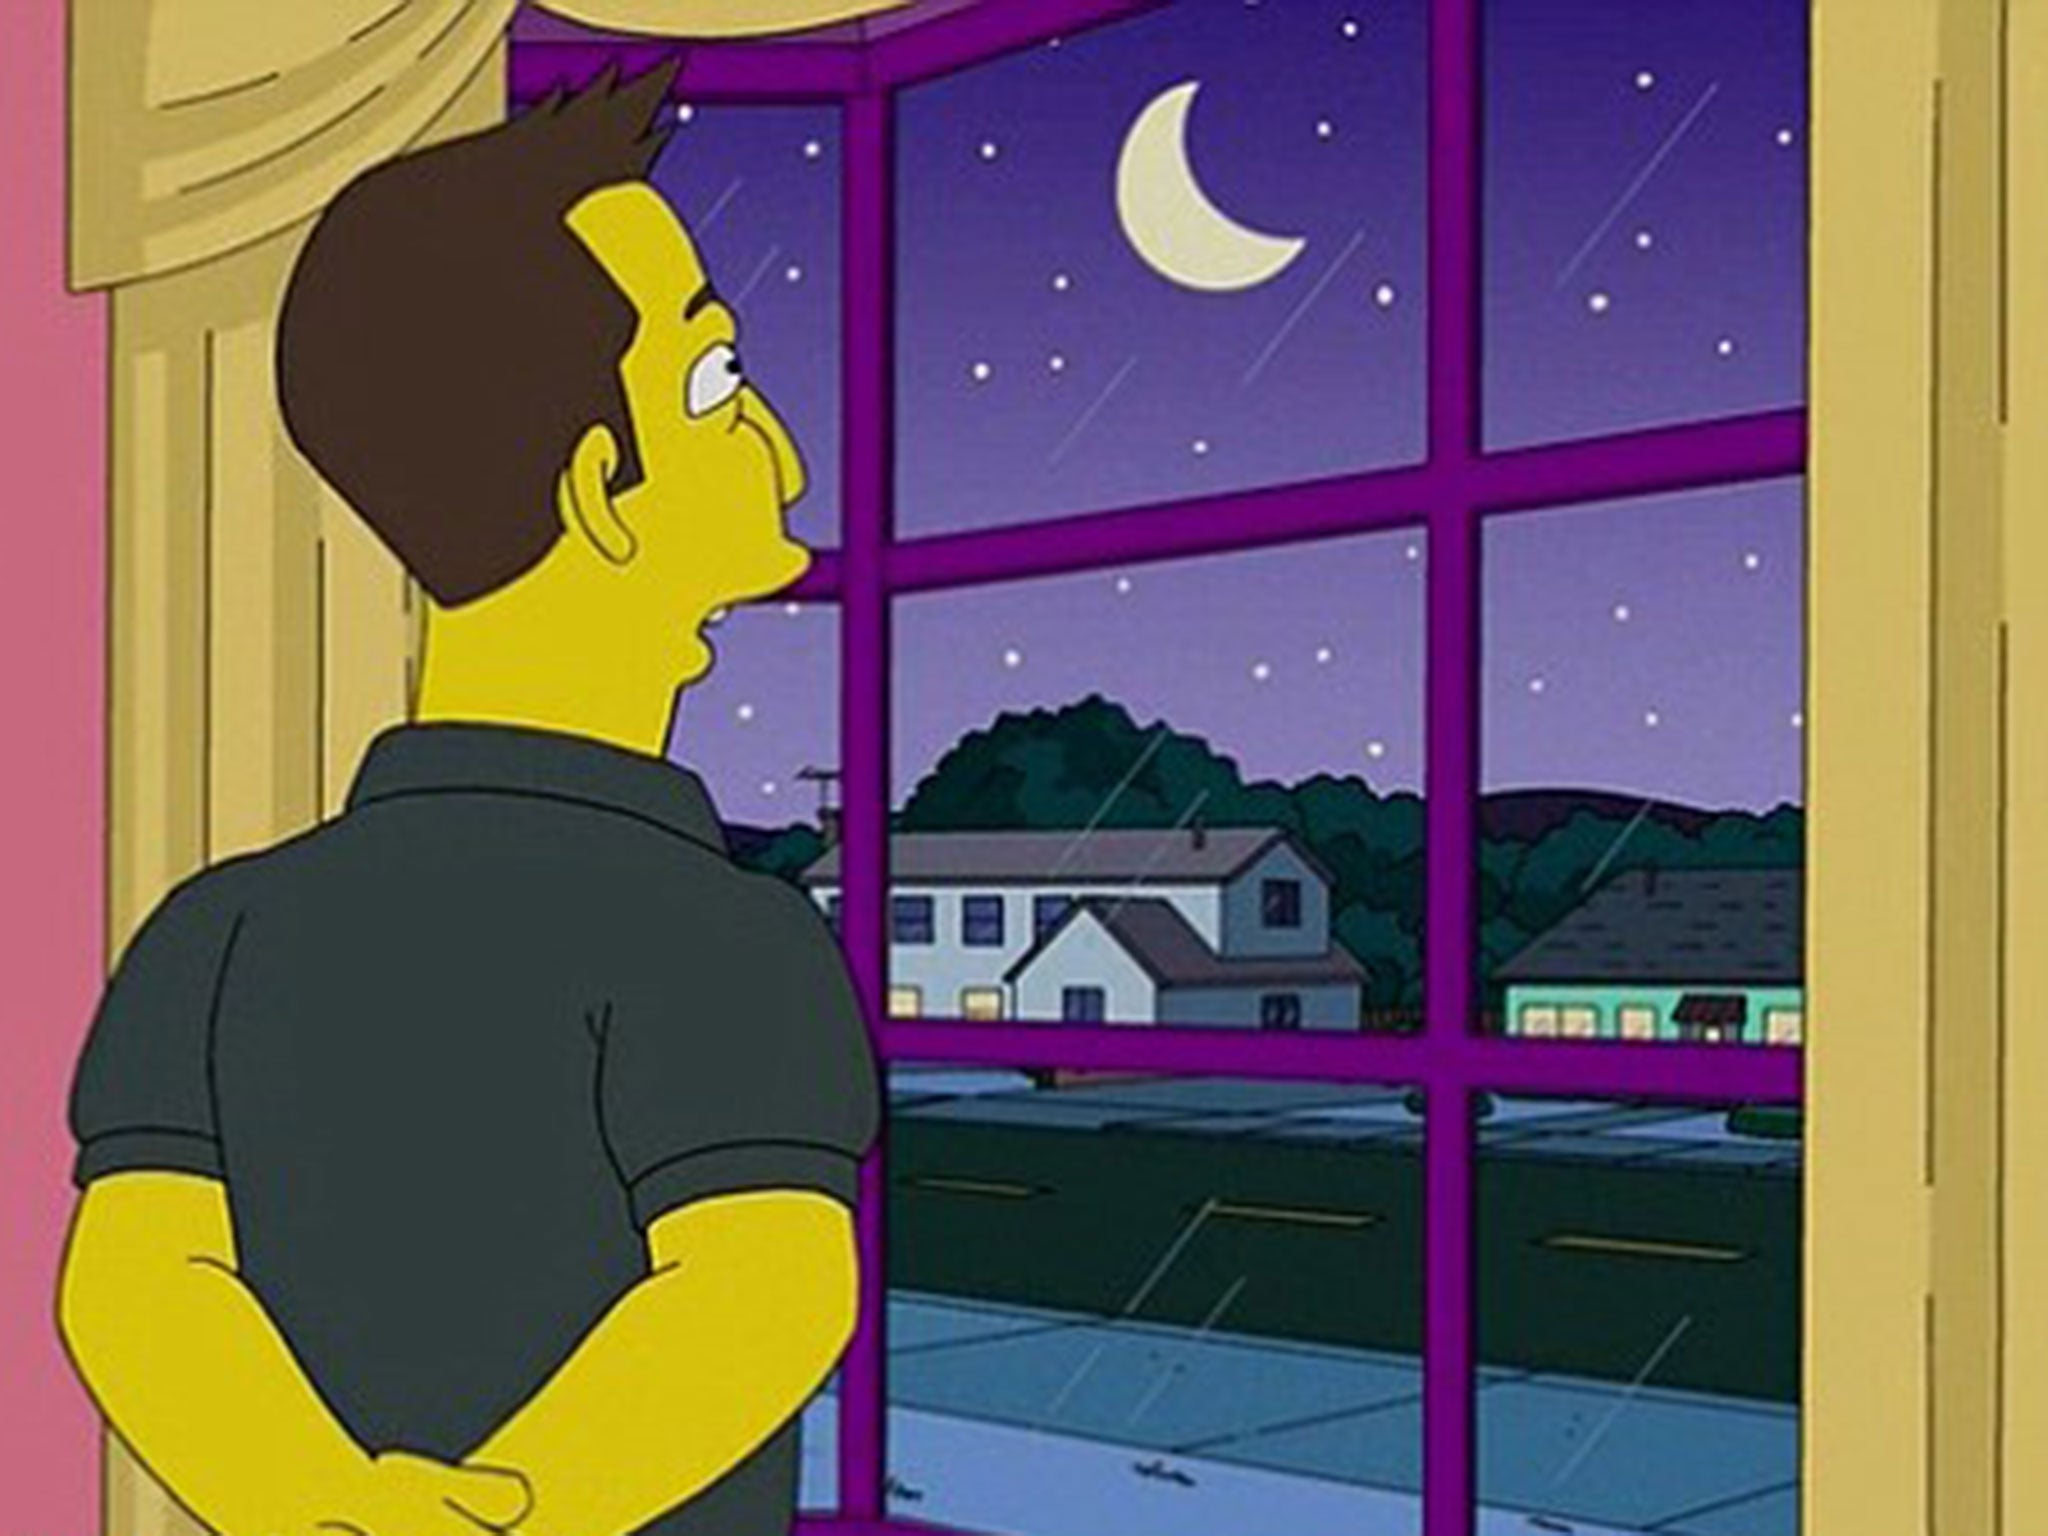 The Simpsons might not be set in America after all - just take a look at that moon